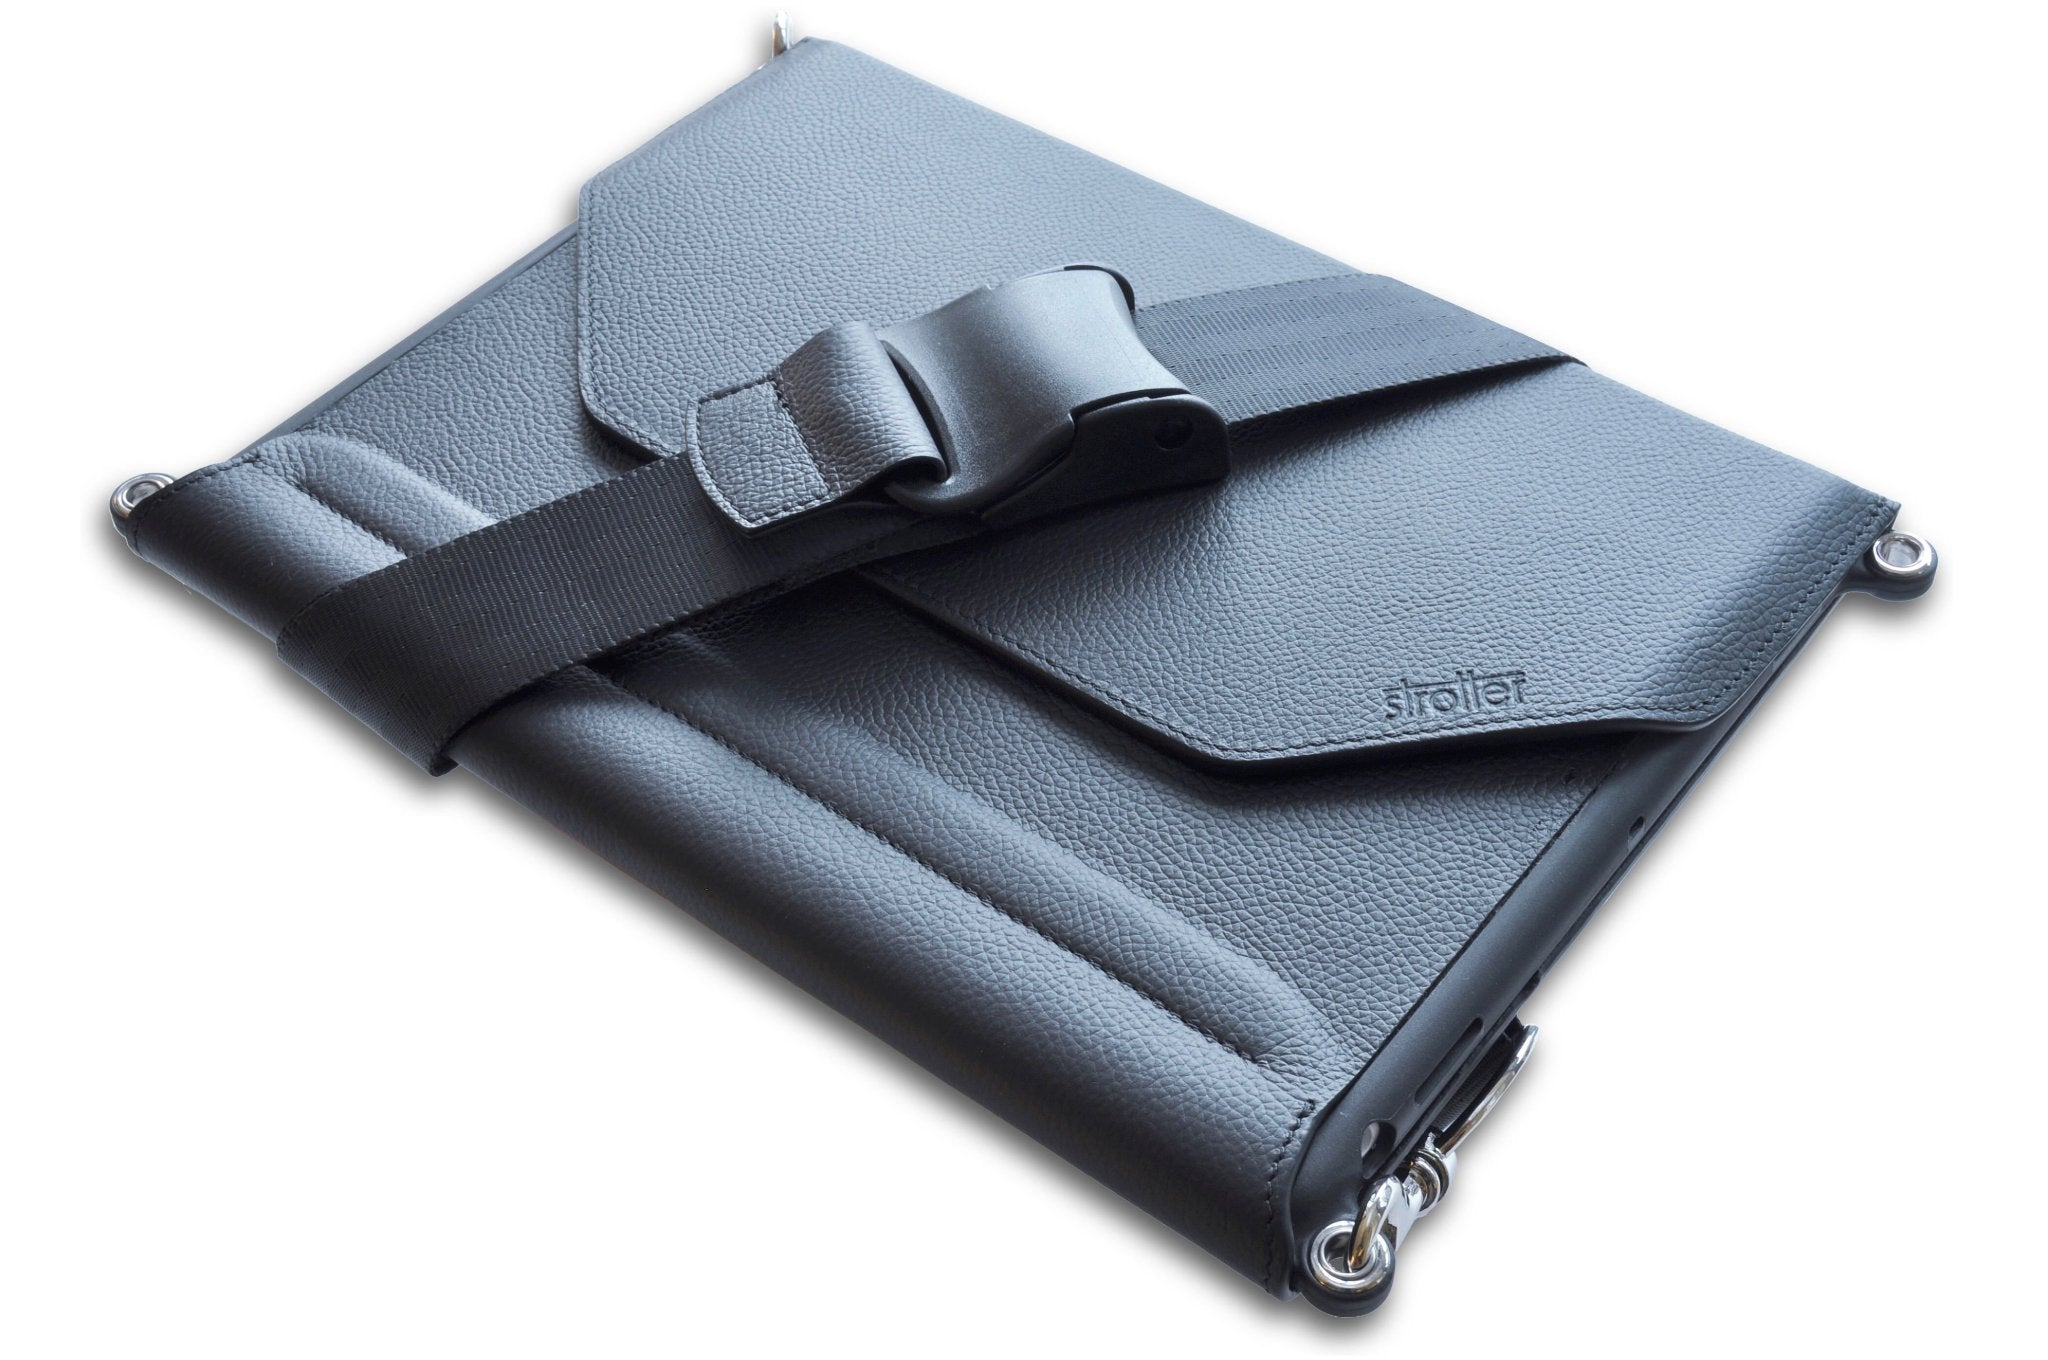 Leather case with strap and Pencil support for iPad Pro 10.5 inch